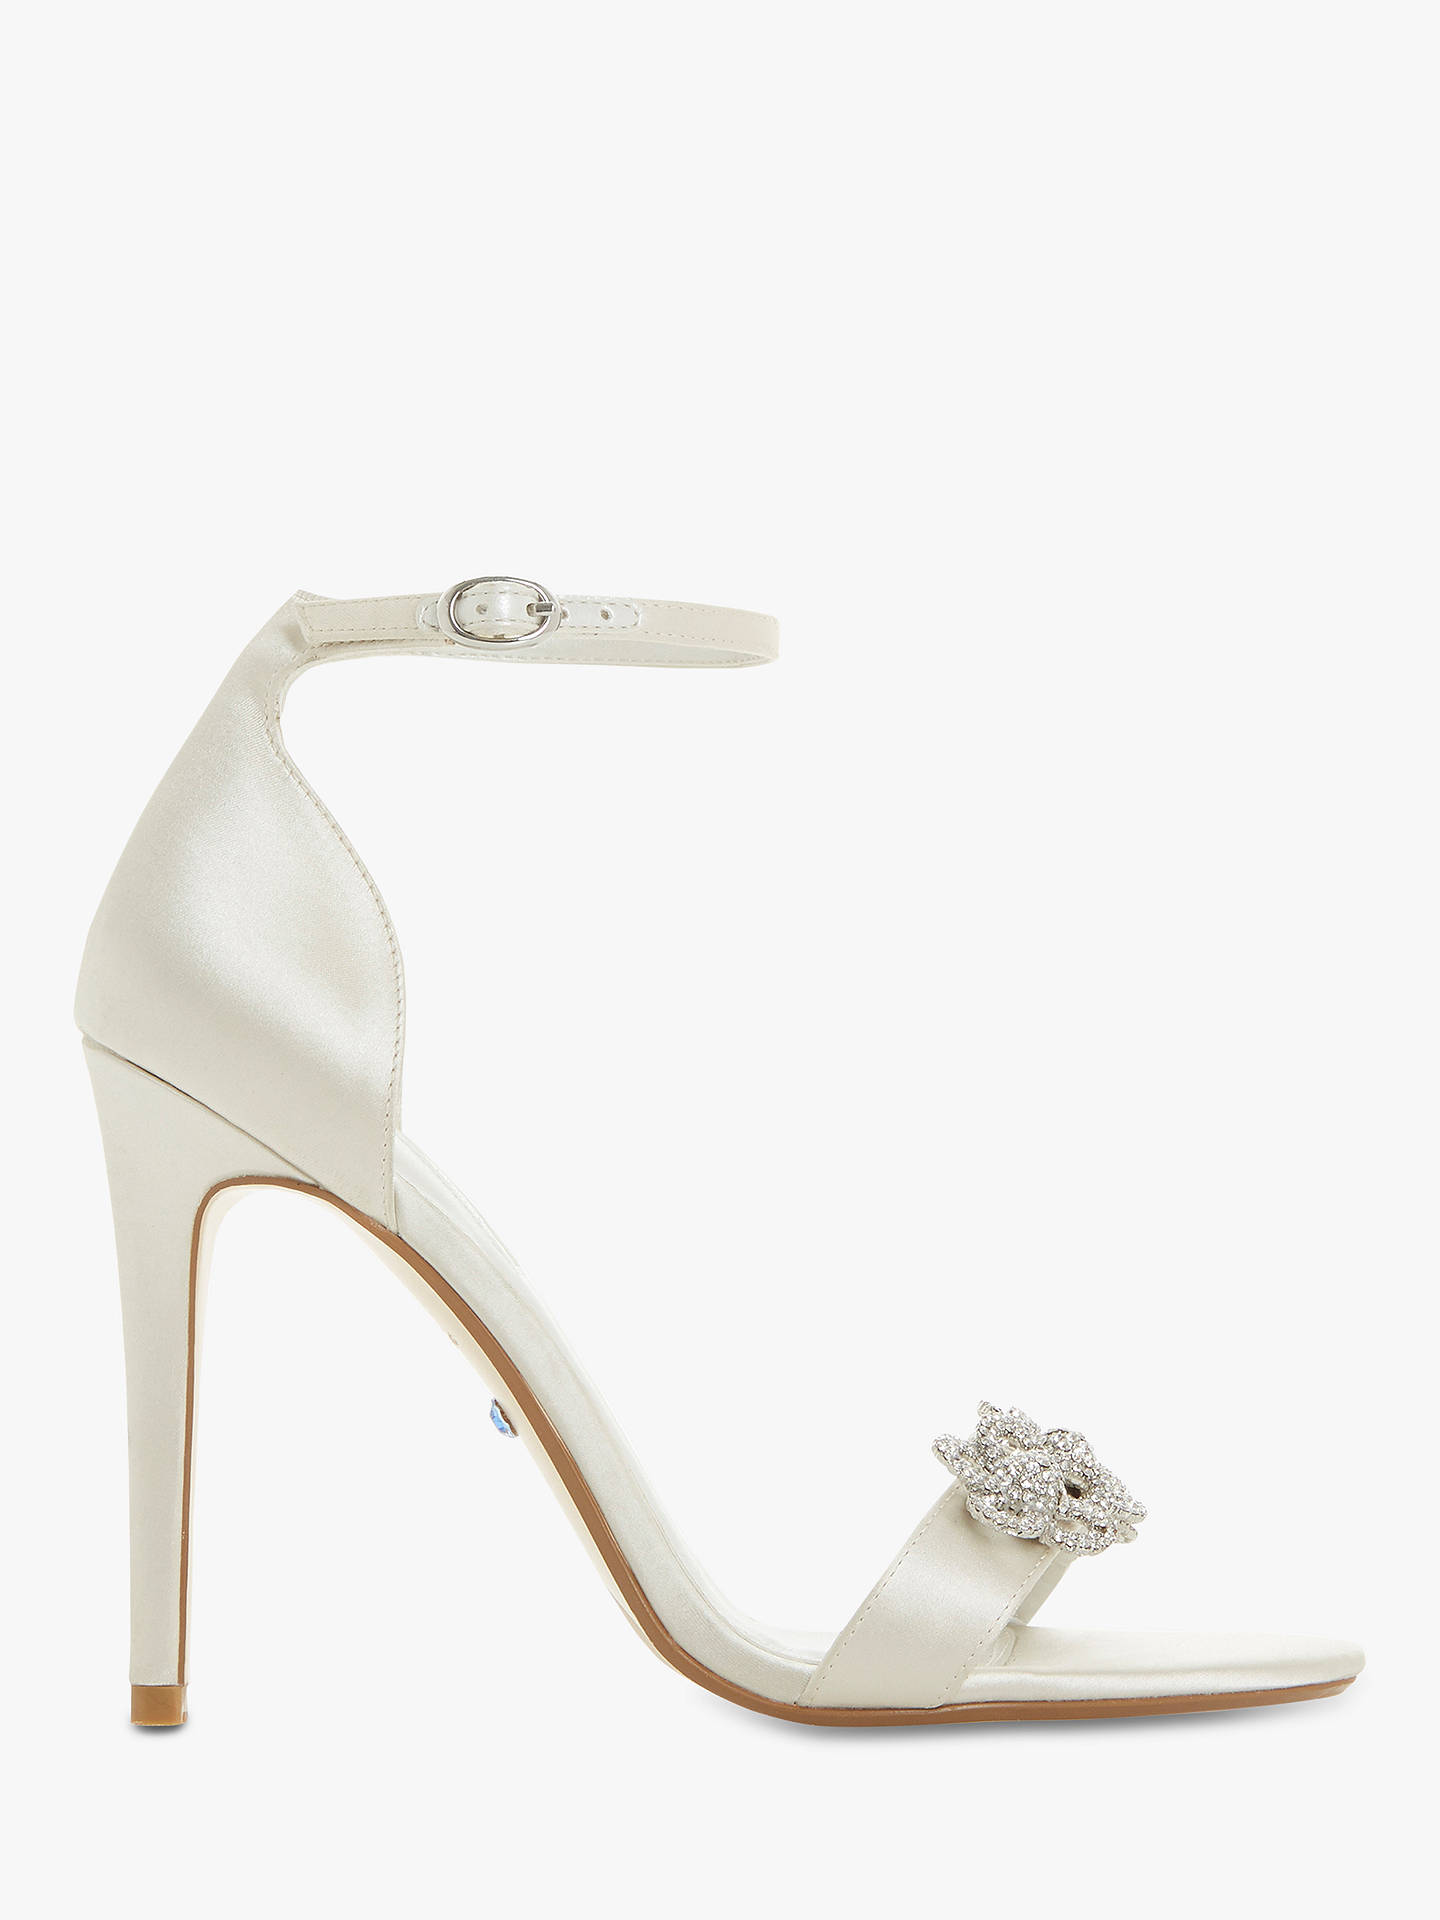 4d1ac1796a8 Dune Marry Me Bridal Collection Embellished Stiletto Heel Sandals ...